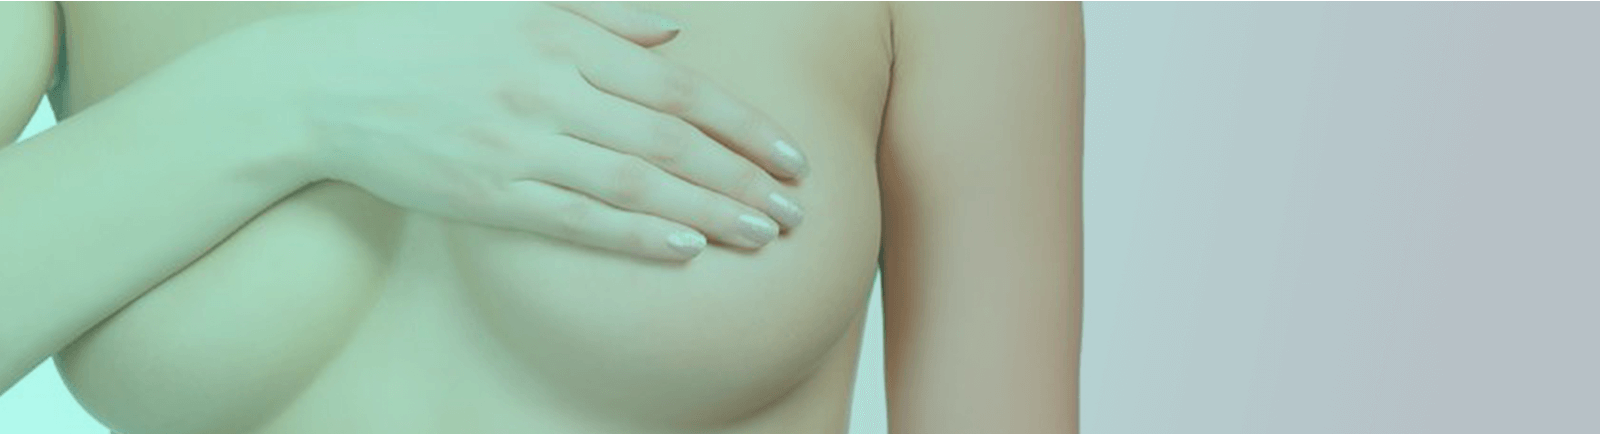 Inverted Nipple Correction Banner - Dr Daood Cosmetics Surgery